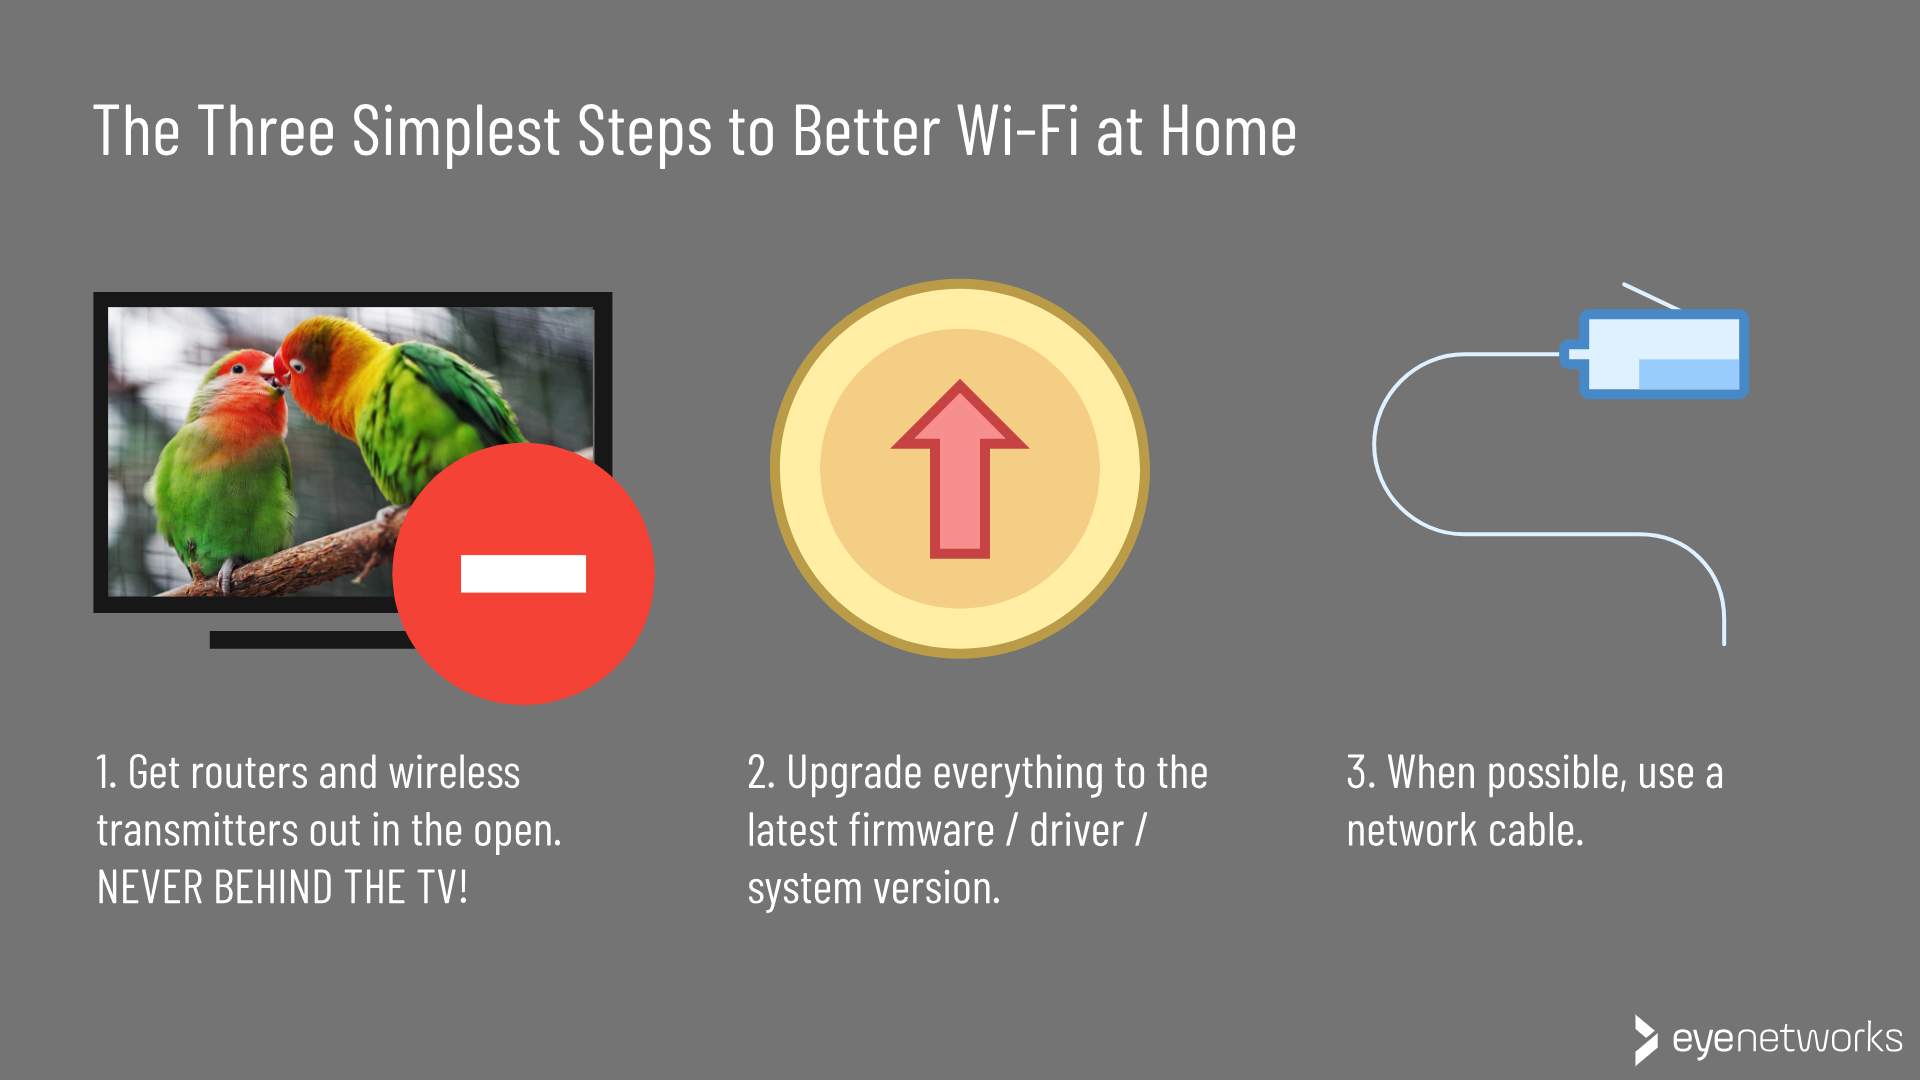 Better Wi-Fi: The three simplest, most vital steps to take without leaving the house